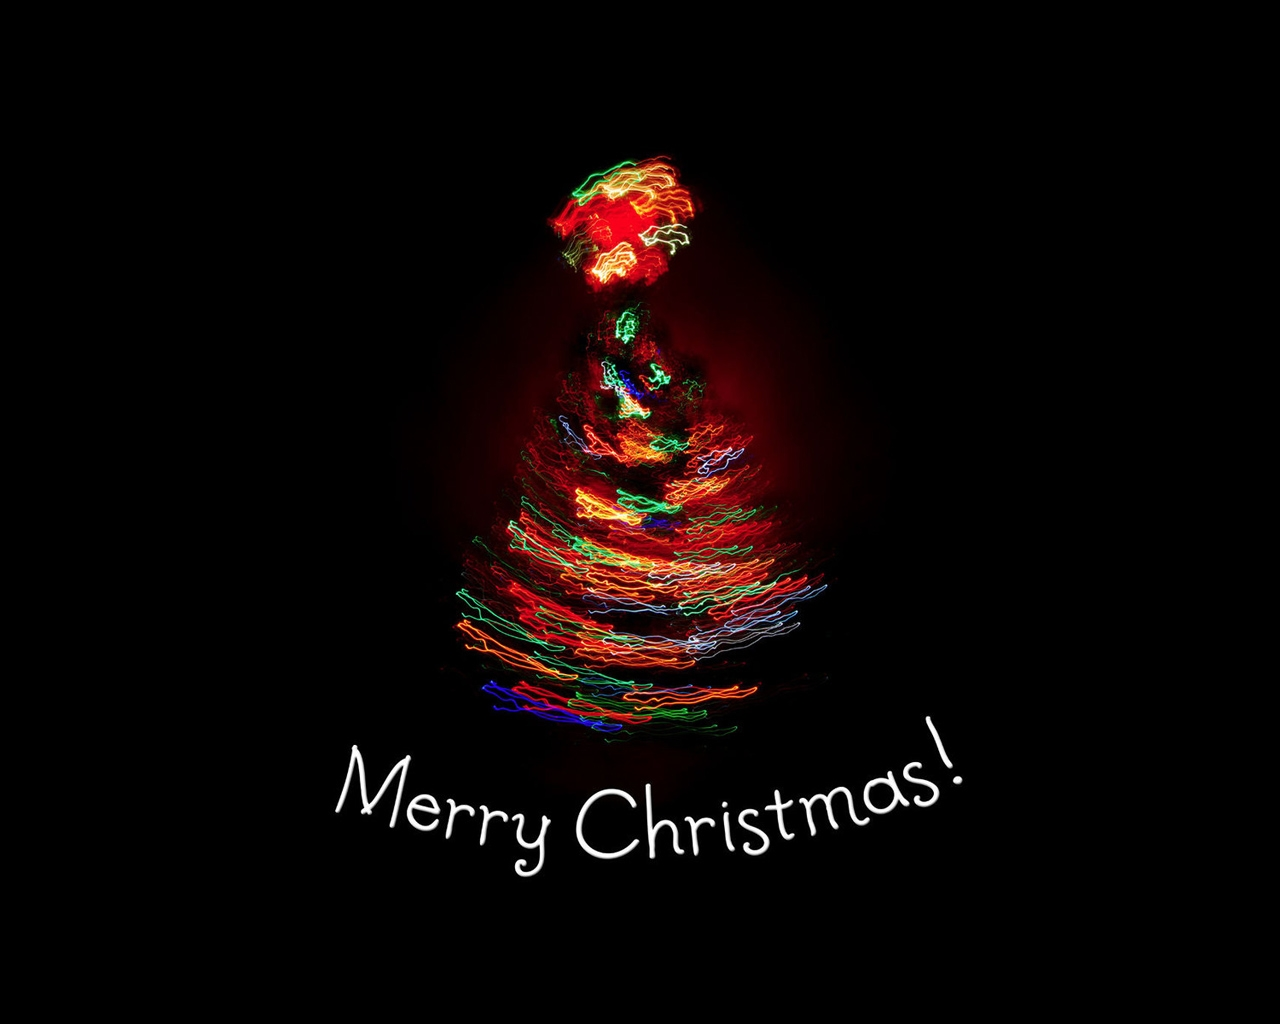 Christmas Greeting card background wallpaper | best christmas wallpaper | greeting card | christmas greeting card | totally cool pix | totallycoolpix | merry christmas background | merry christmas wallpaper